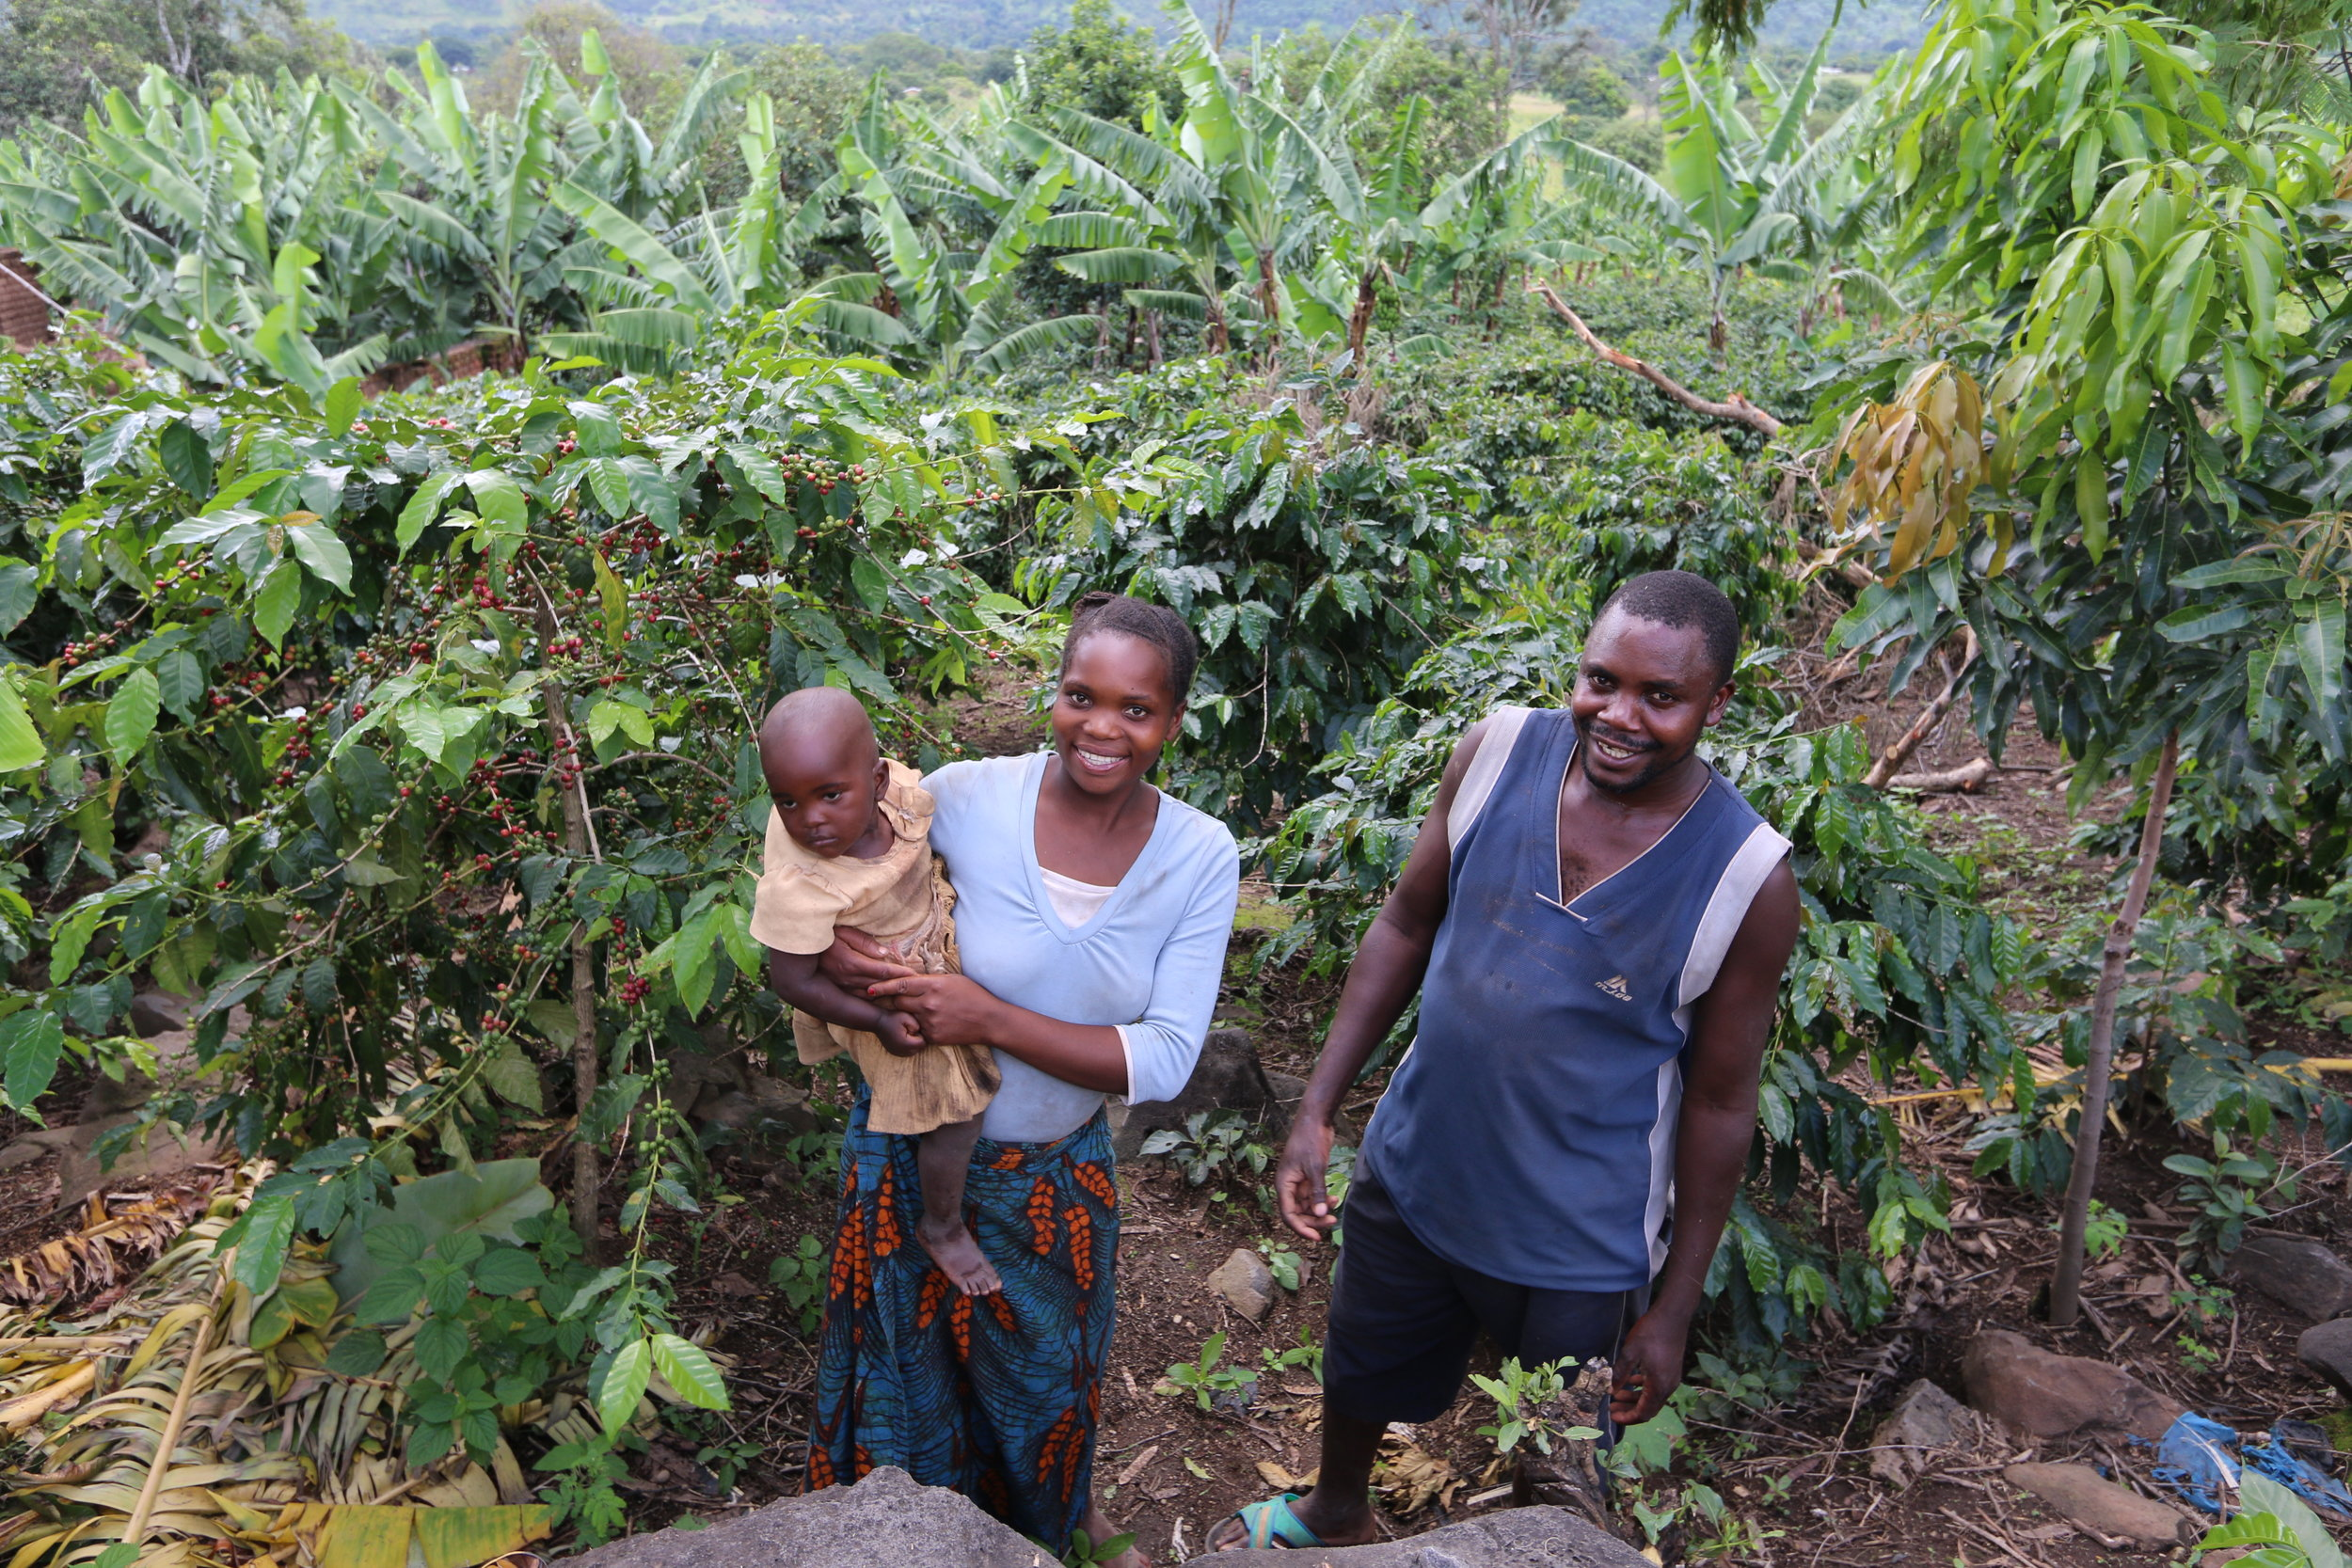 This is Simon with his wife and daughter. He lives in Wambilo, a sub-village of Utengule-Usongwe. With the help of his wife, he has been growing and selling coffee for the past seven years.Each year, he gets an average of two tons from his farm and he processes it at home. With each coffee harvest, he is able to afford necessities for his family and send his children to school (his elder children were at school at the time of this visit).  We will be having a tasting session at The Ridge Cafe in Mbeya in April and we will be inviting Simon and his family as well so they can see the end product of their labour. In the meantime, come and enjoy his coffee at the cafe! Stay tuned for dates for the tasting session.